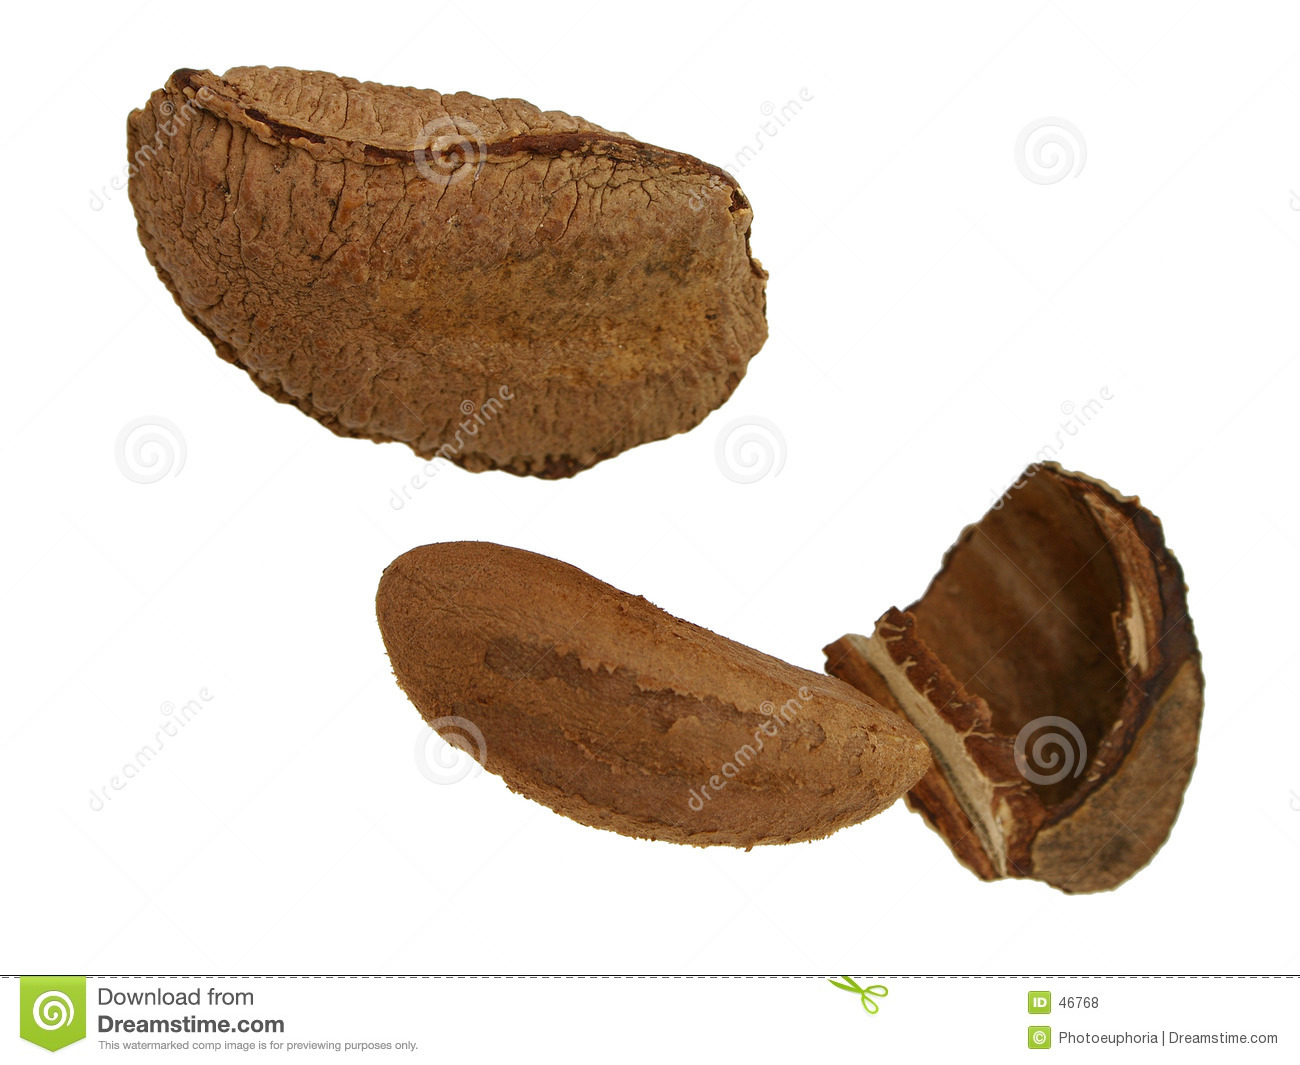 Brazil Nut In Shell Royalty Free Stock Photos - Image: 46768